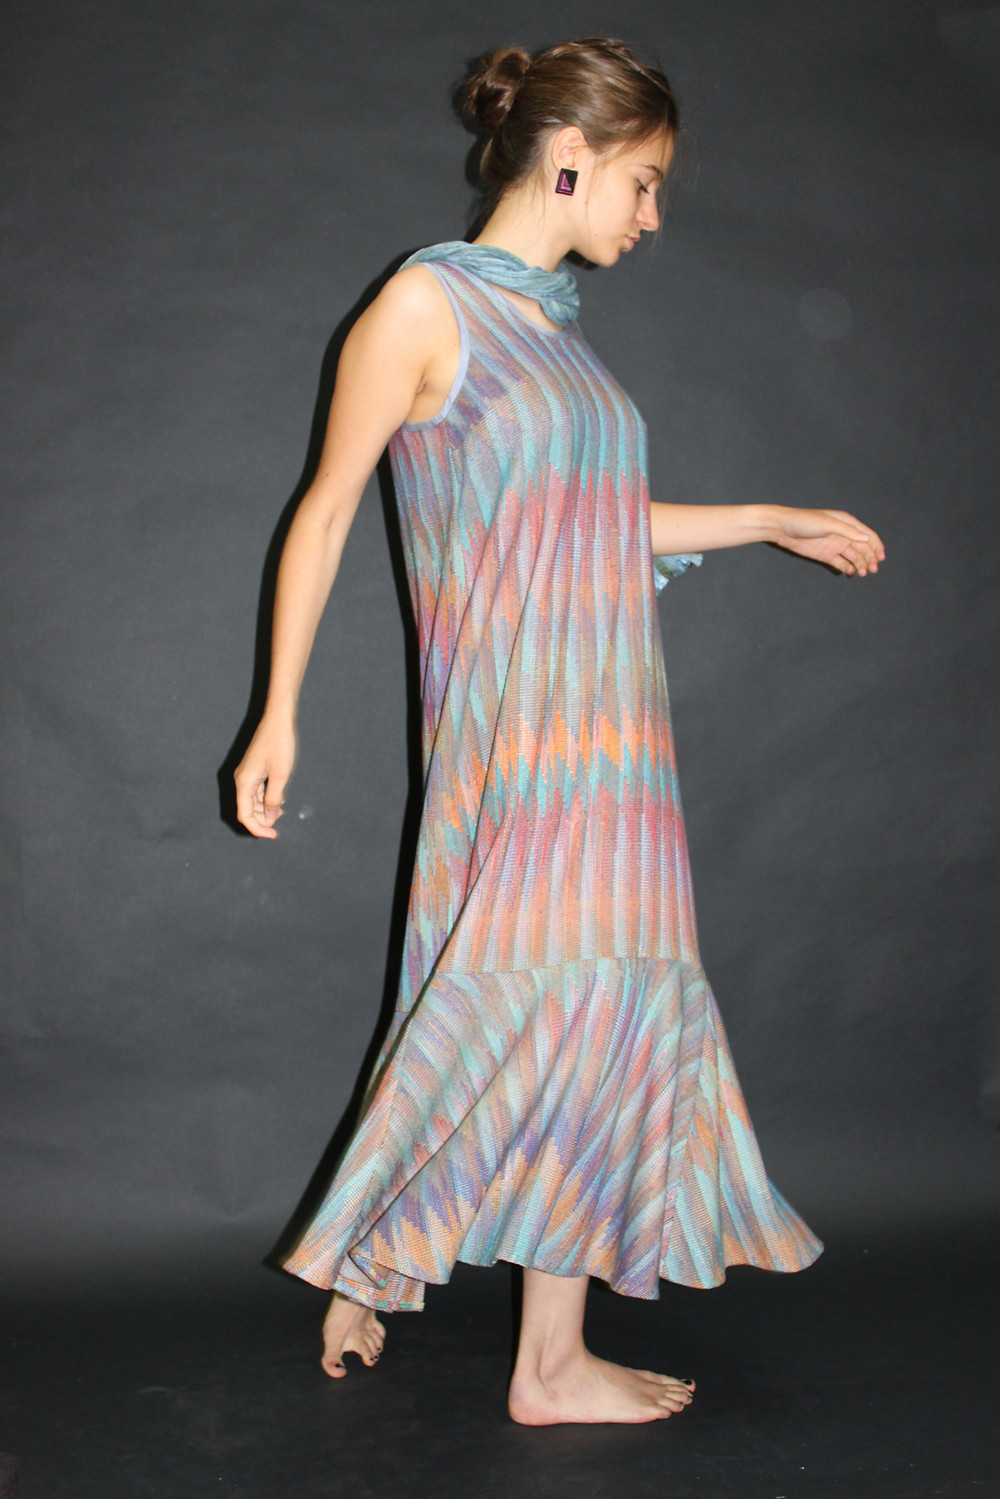 Dress woven by Teena Tuenge